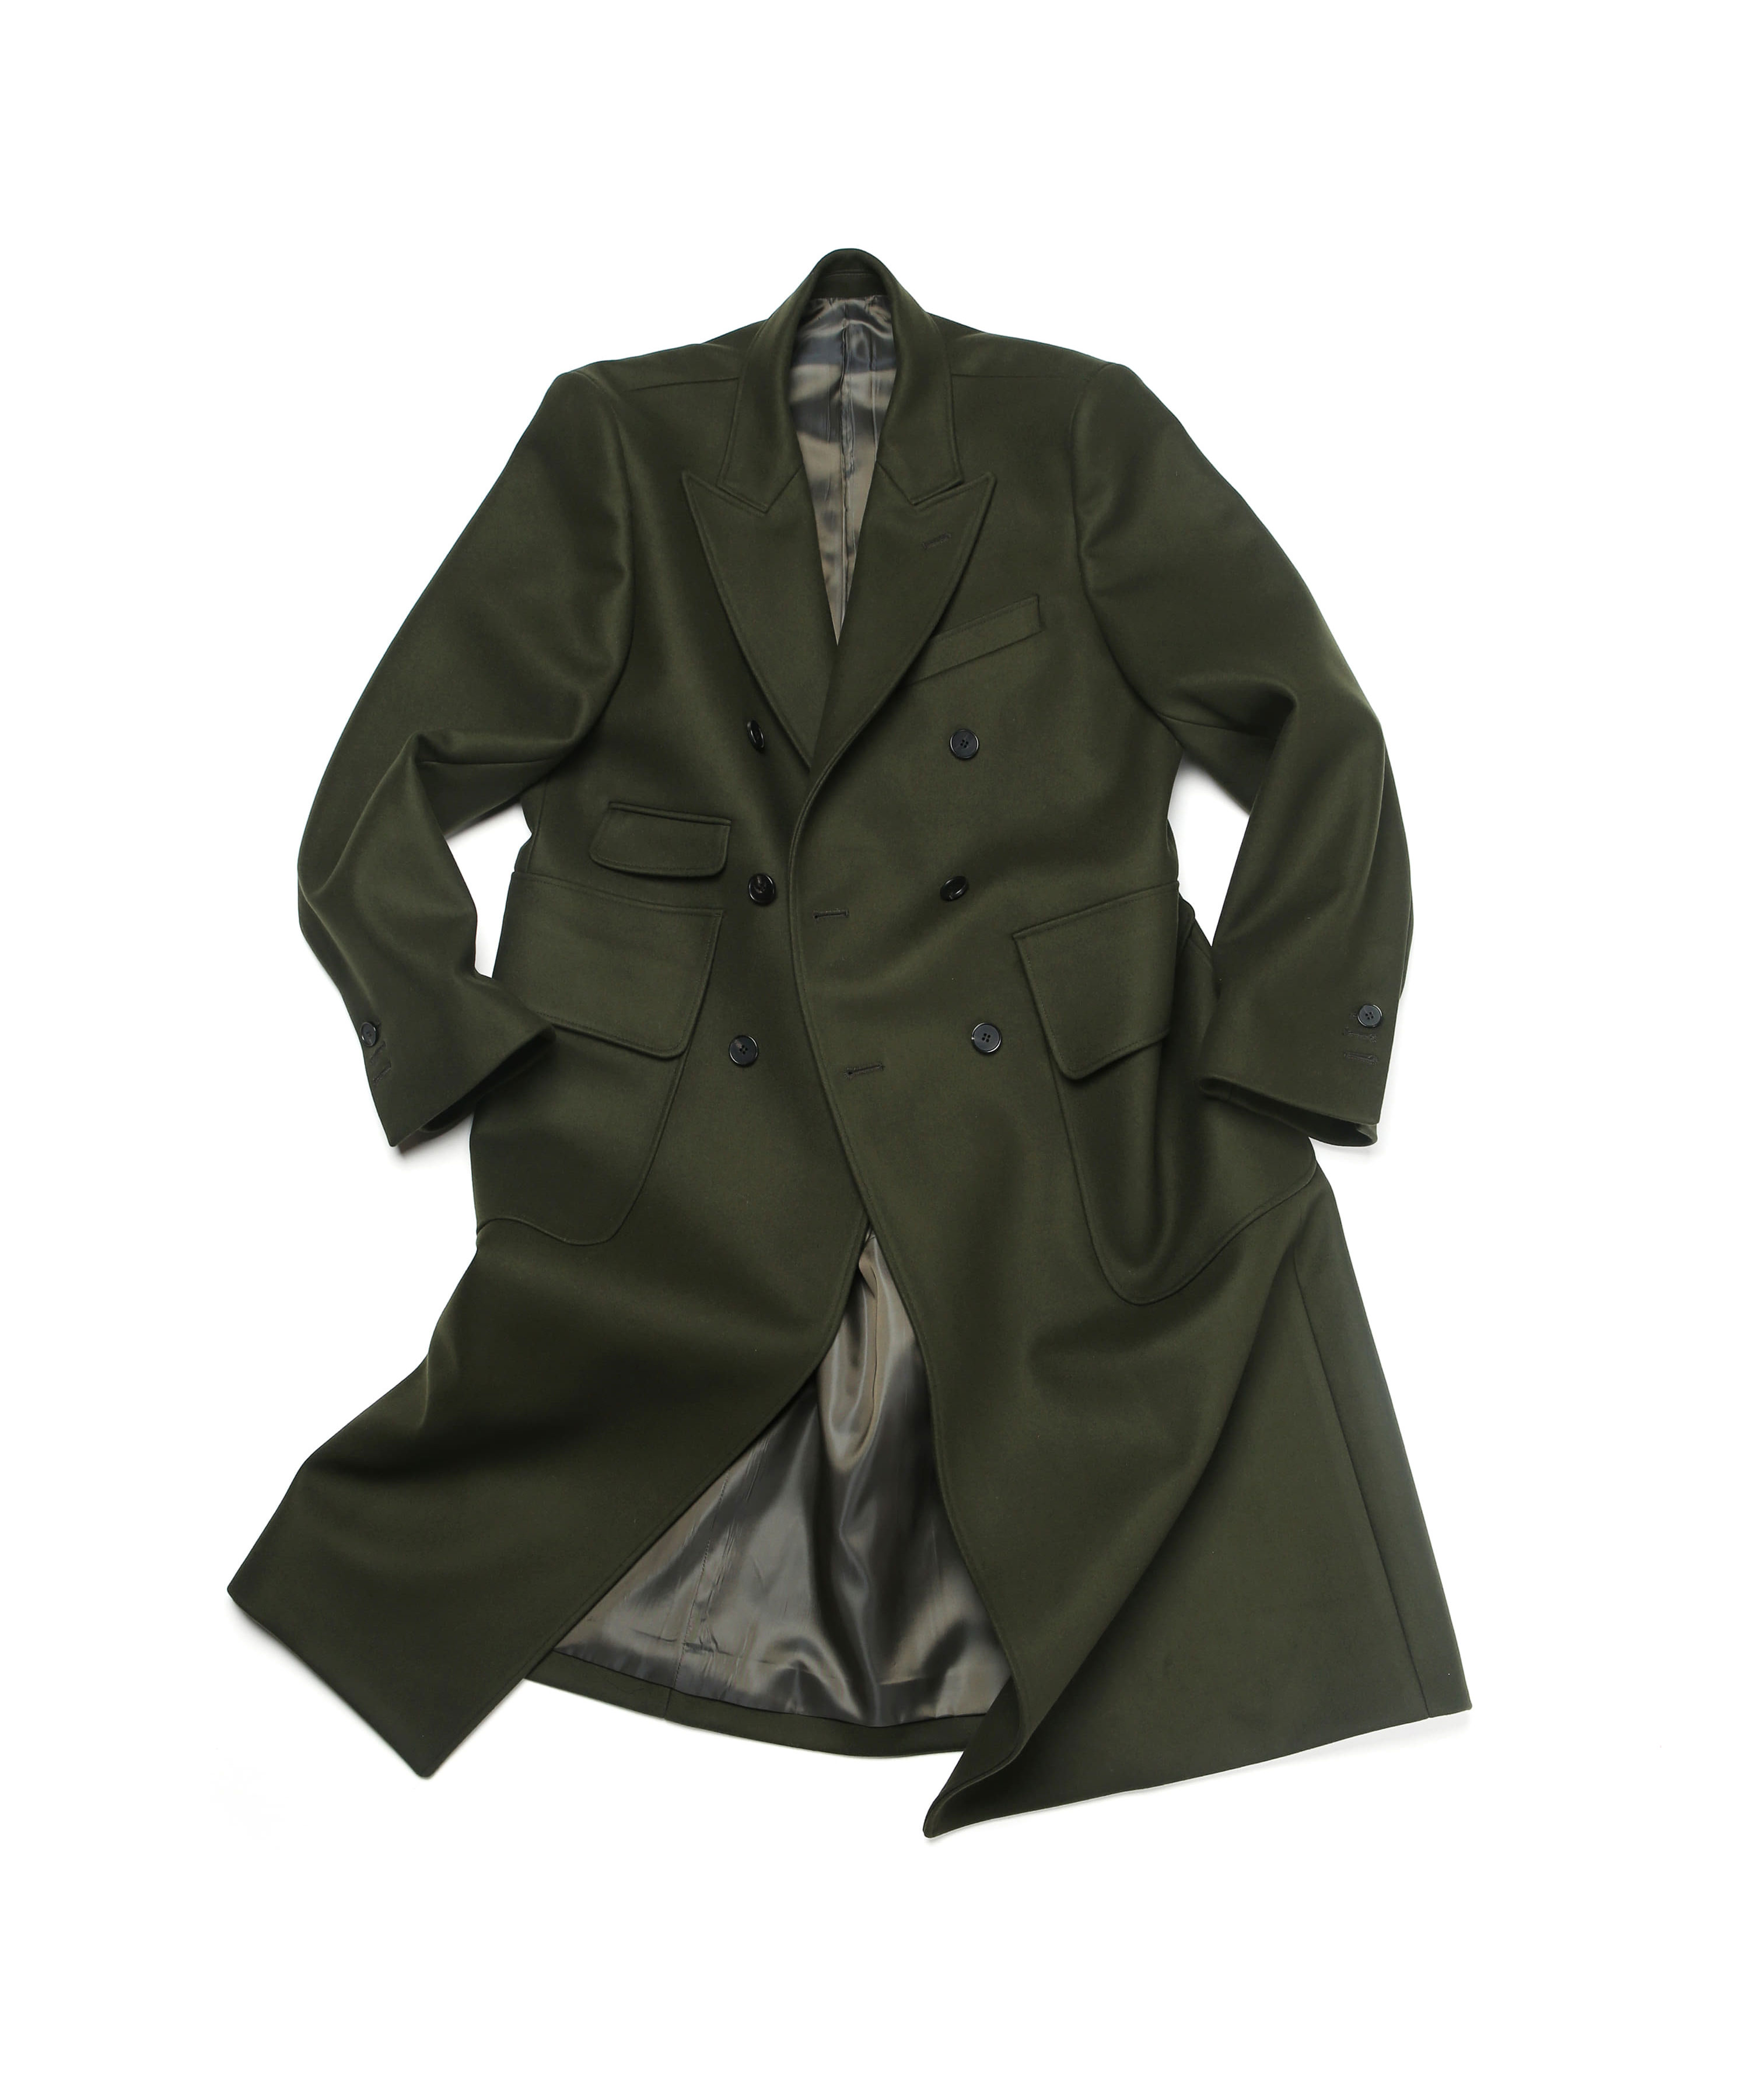 OLIVE DRAB TIMELEAP DOUBLE COAT 01-2